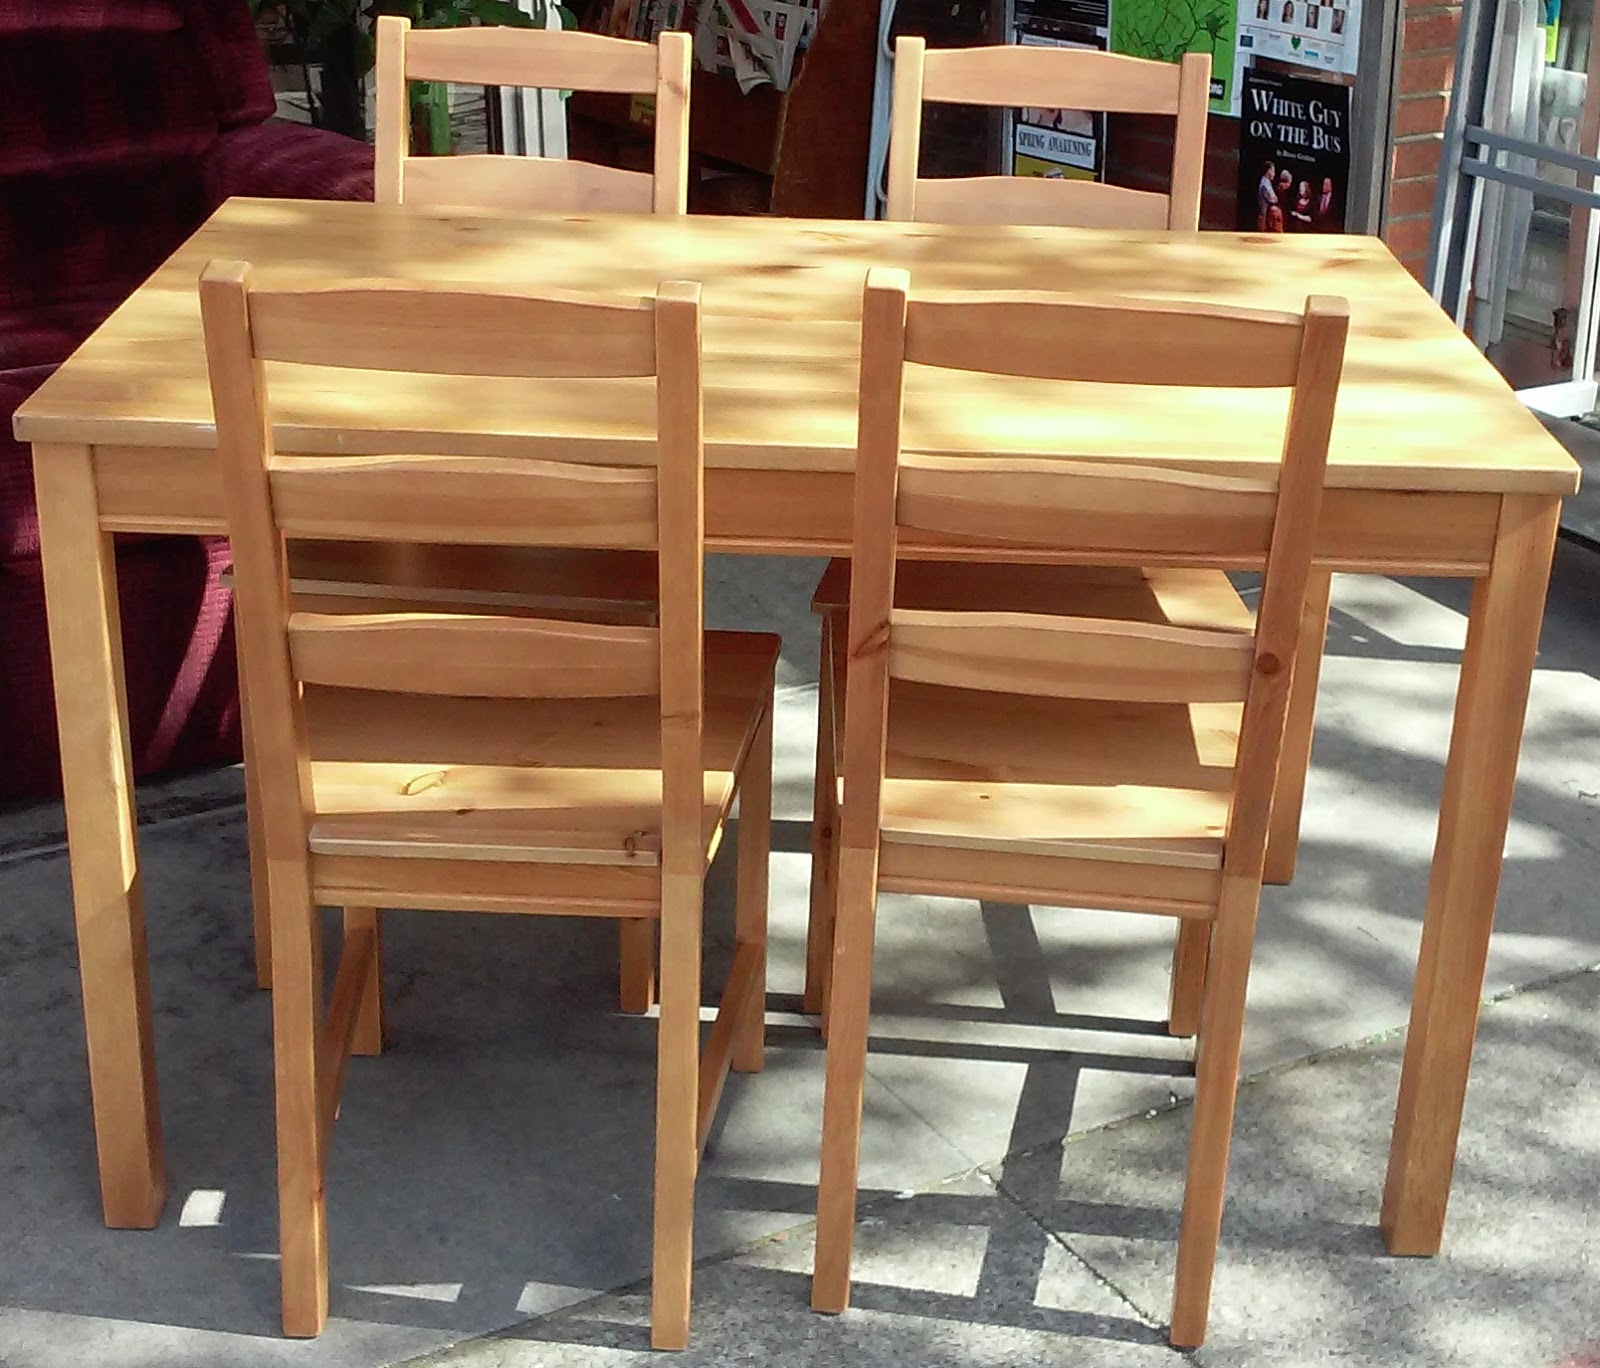 Uhuru furniture collectibles sold ingo ivar 4 place for Table 4 places